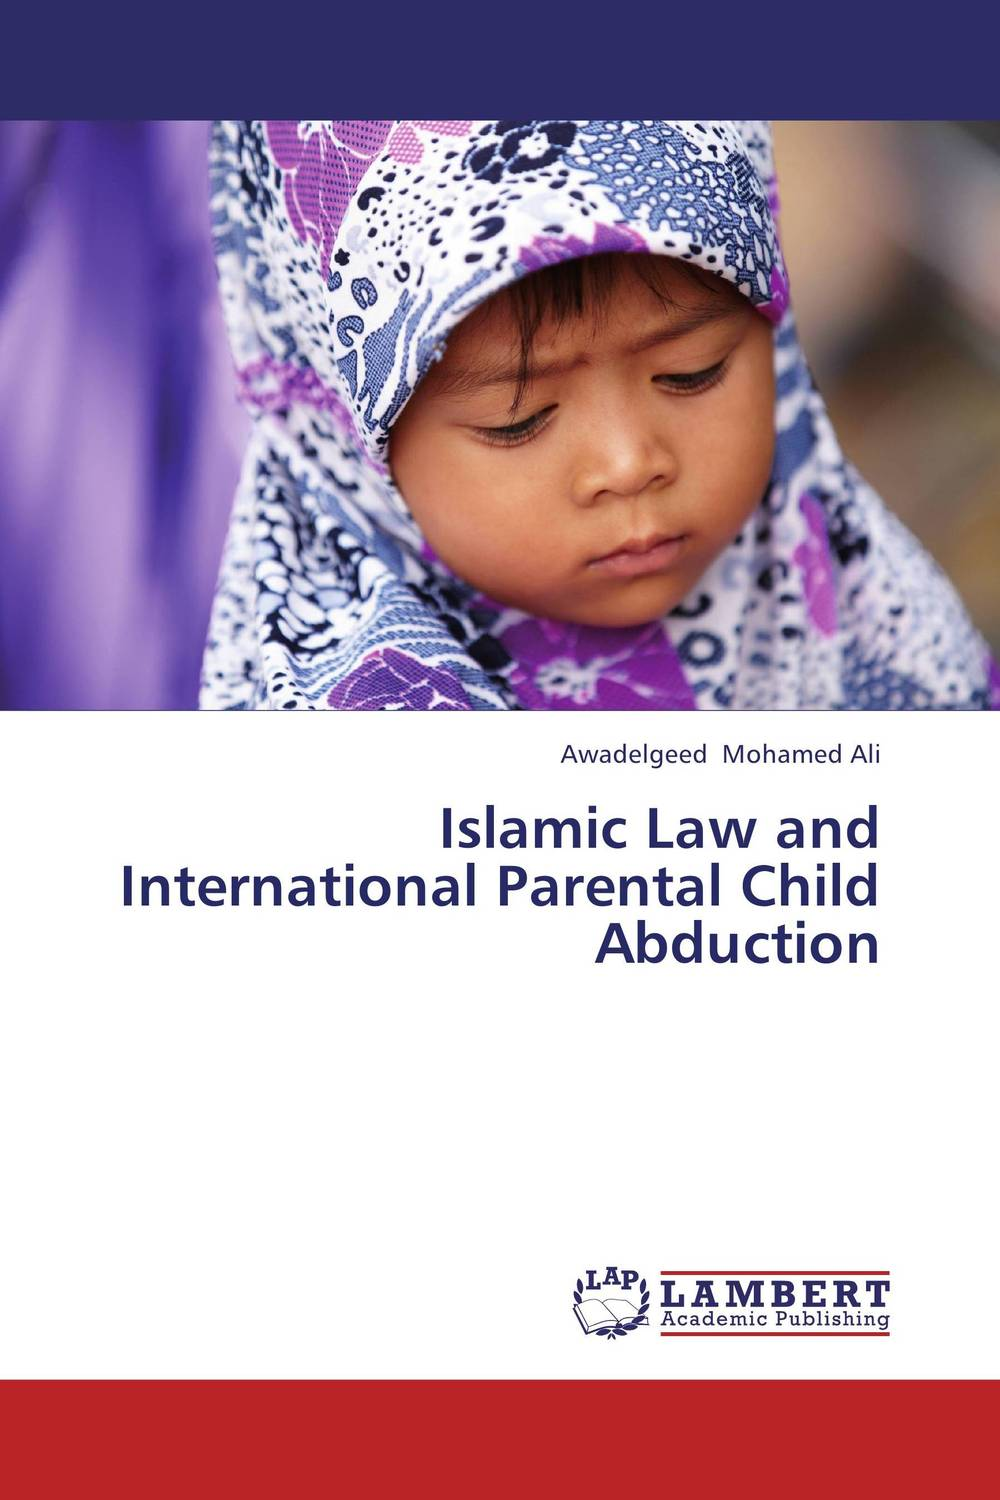 Islamic Law and International Parental Child Abduction theodore boone the abduction